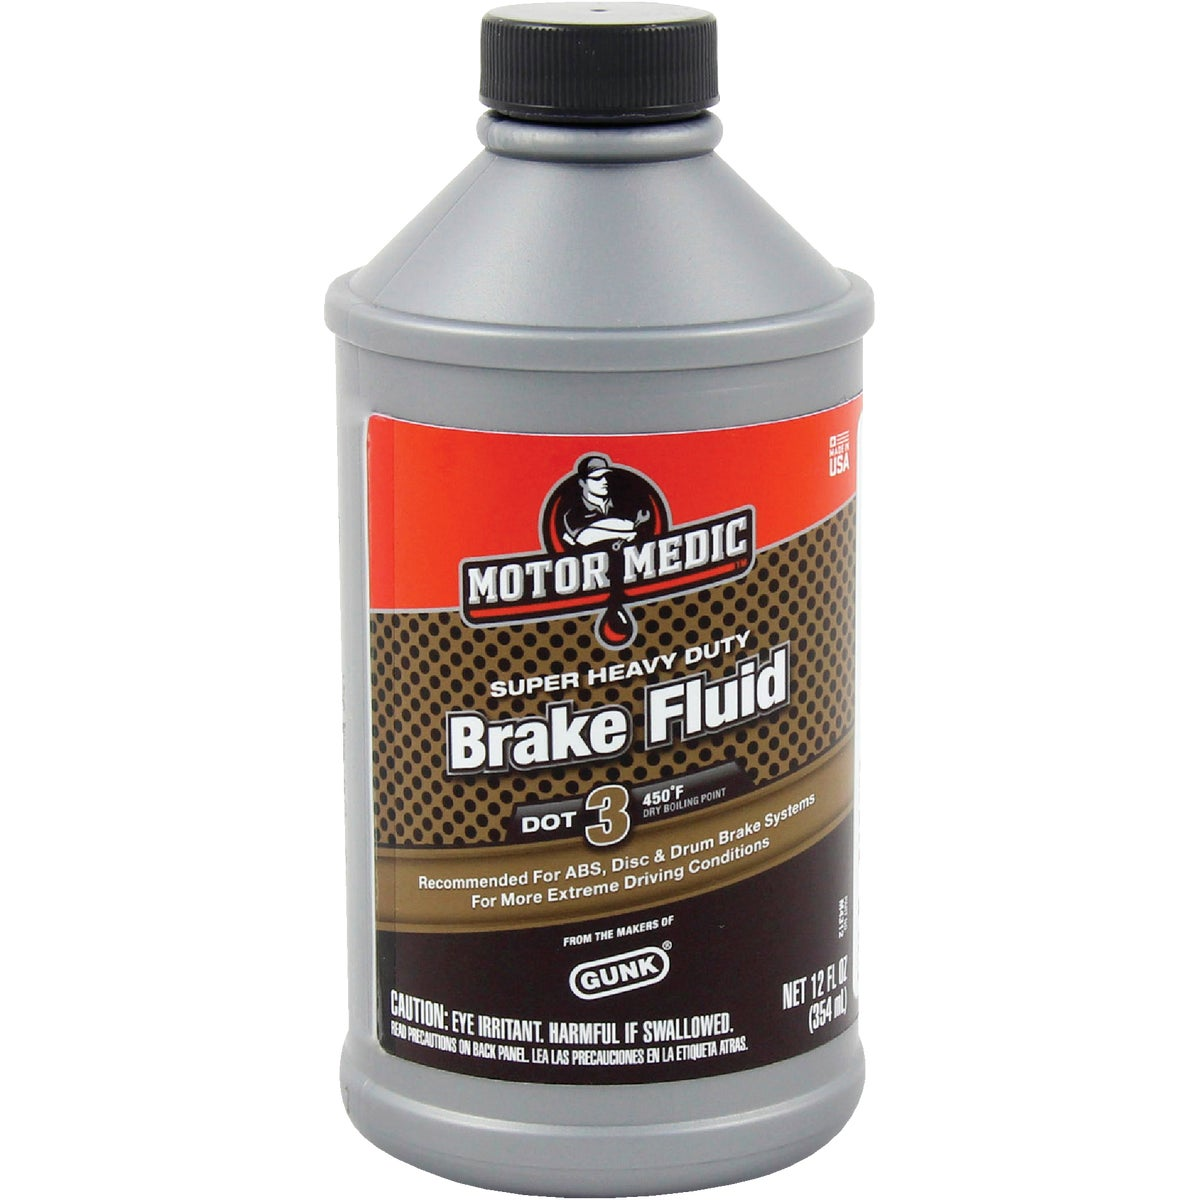 12OZ BRAKE FLUID - M4312 by Radiator Specialty